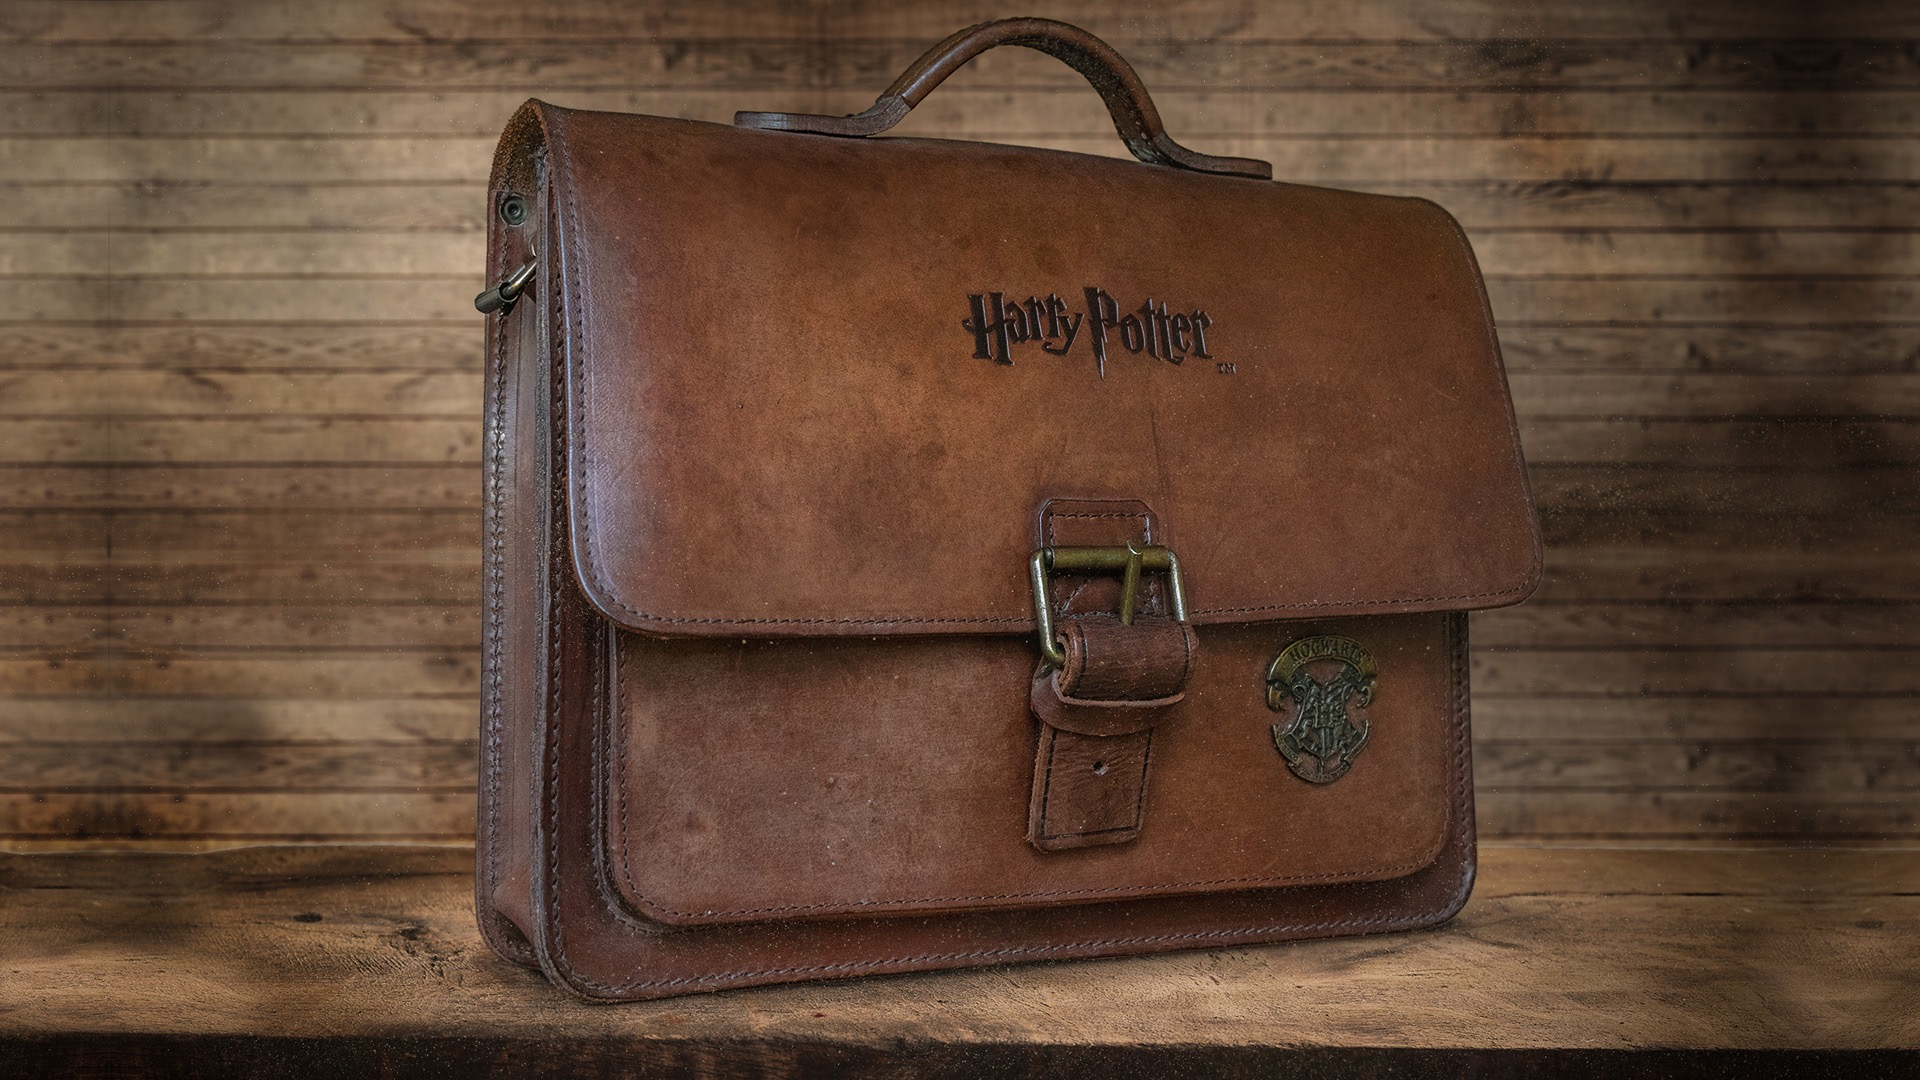 Cartable en cuir marron Harry Potter.